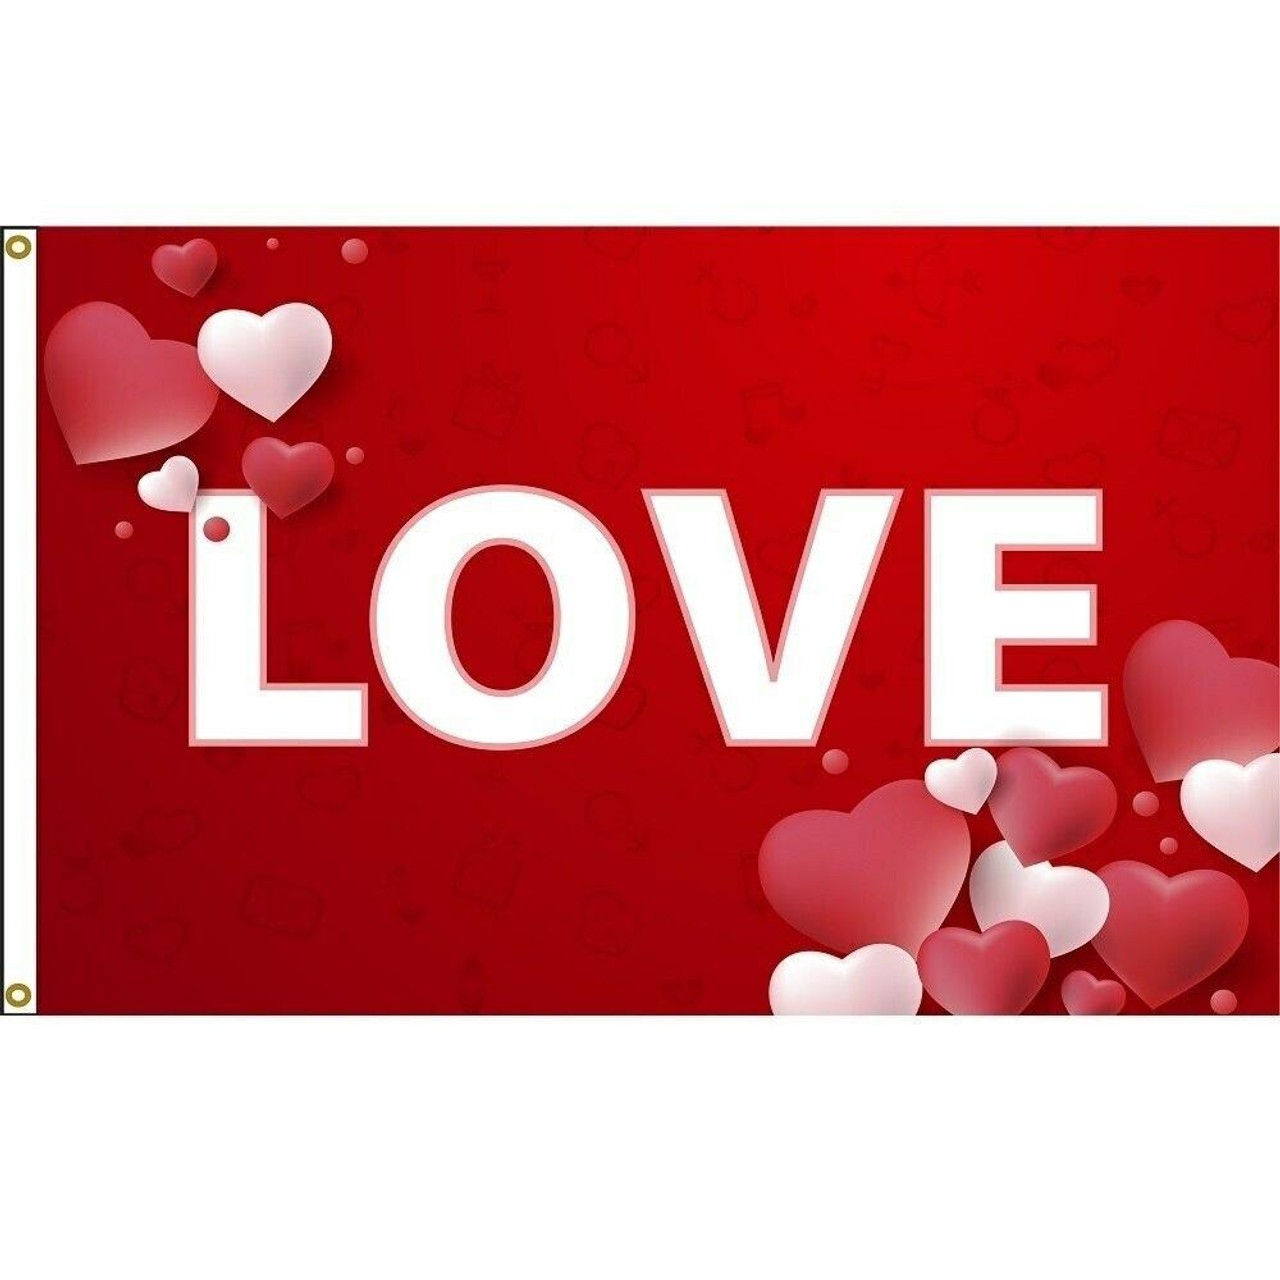 The love valentine flag has a bright red background with the word love written in white right in the middle of the flag.  On two corners are hearts in various shades of pink.